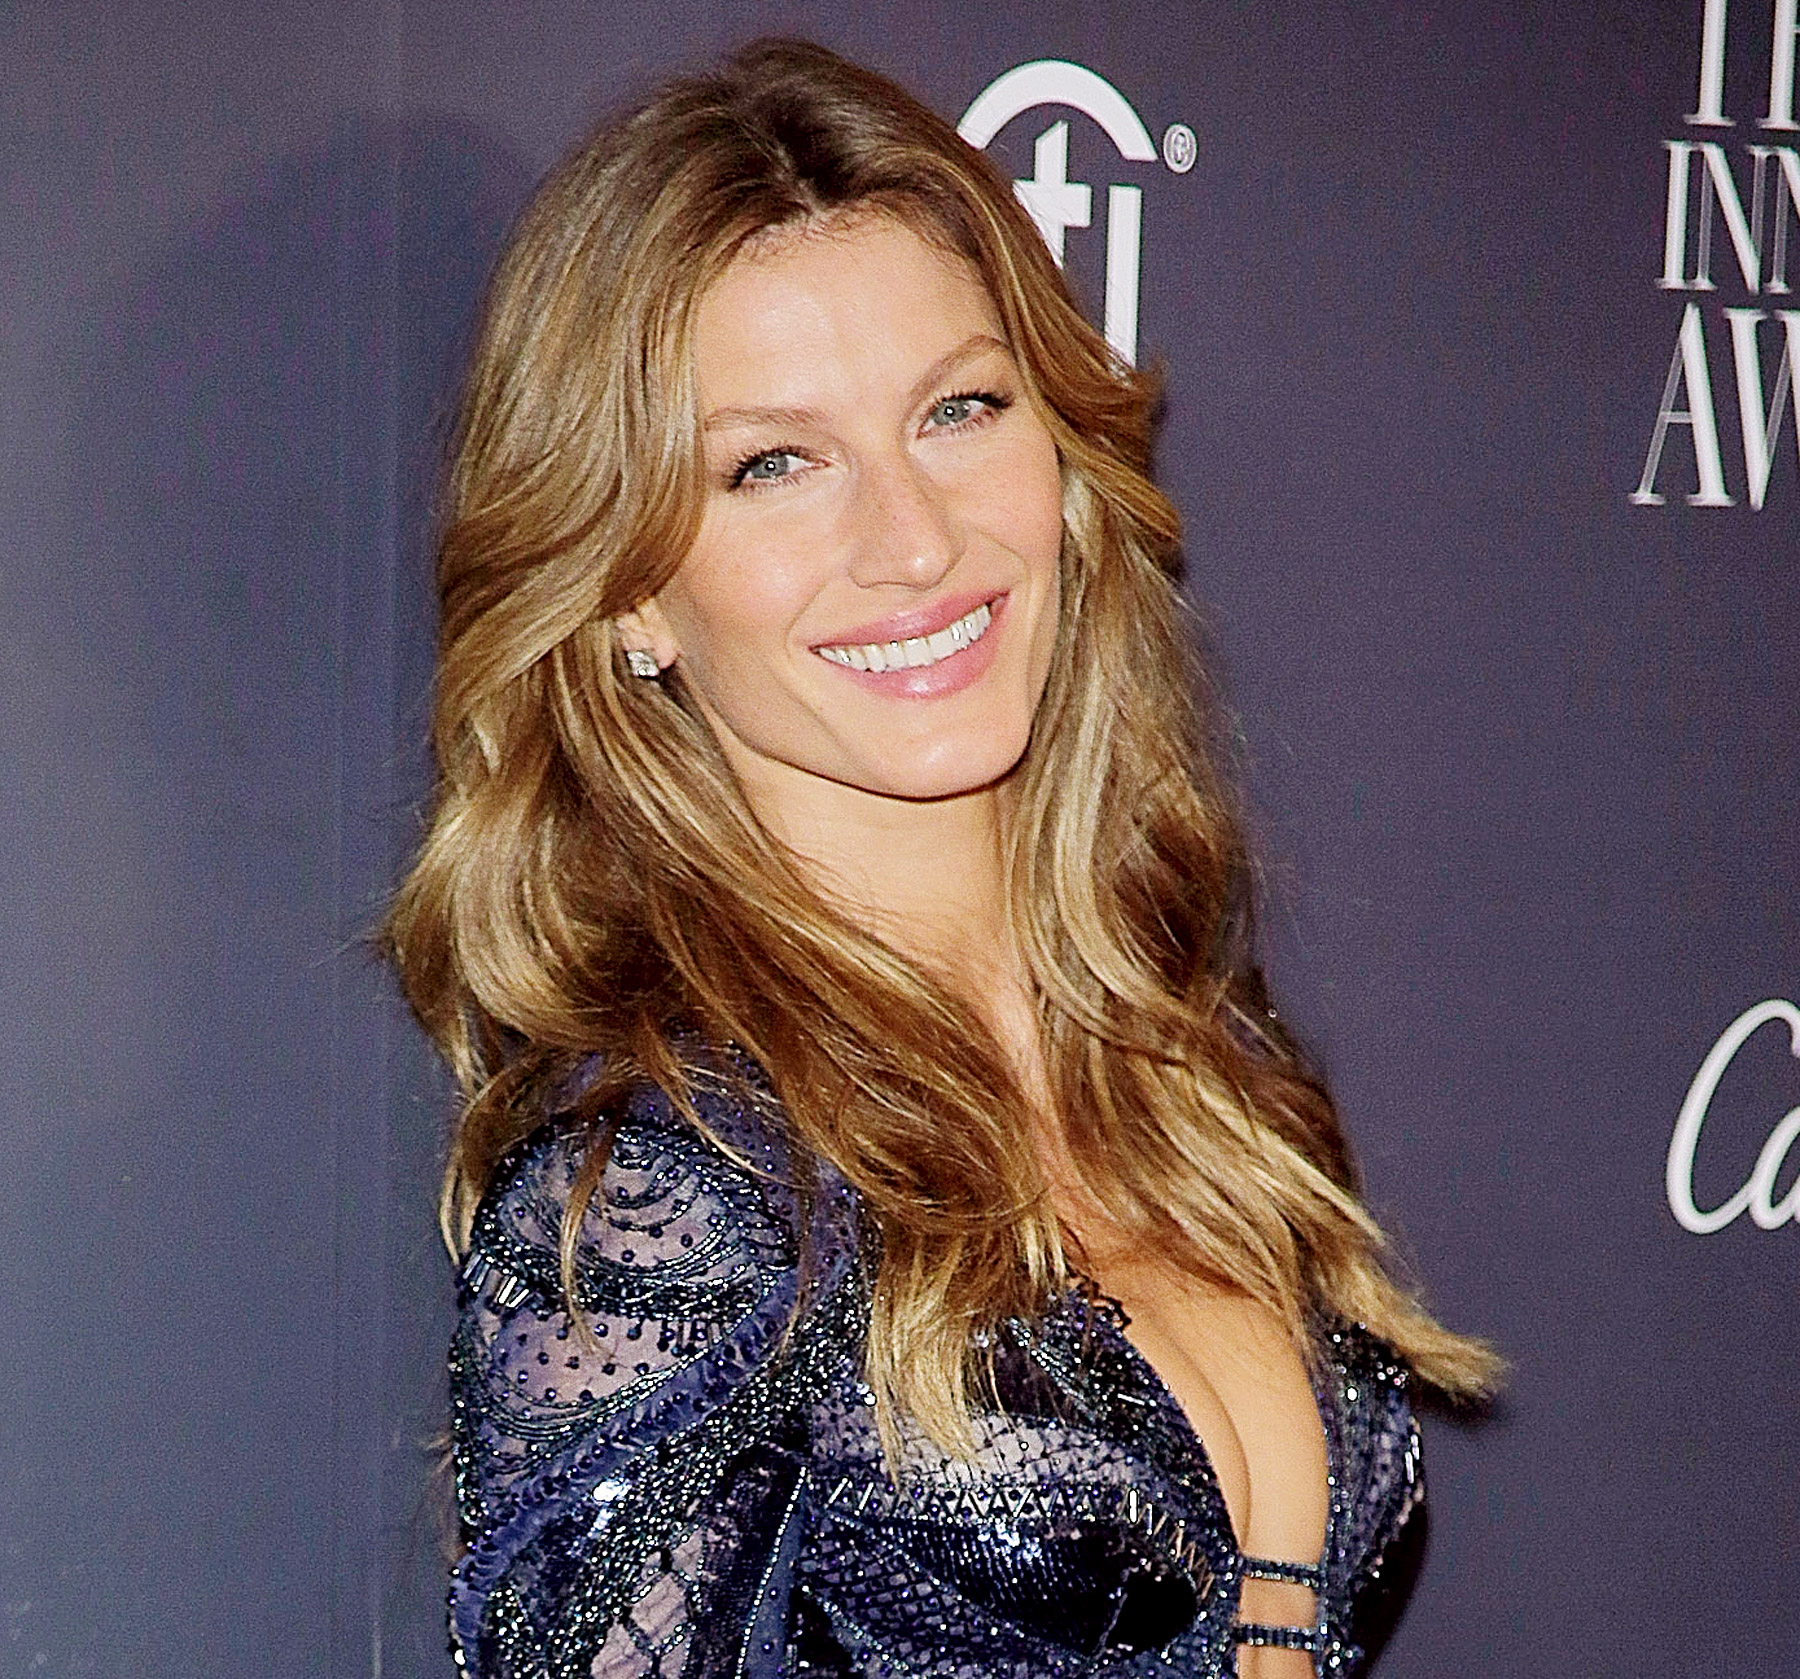 Gisele Bundchen Offers Motherhood Advice You Might Agree With